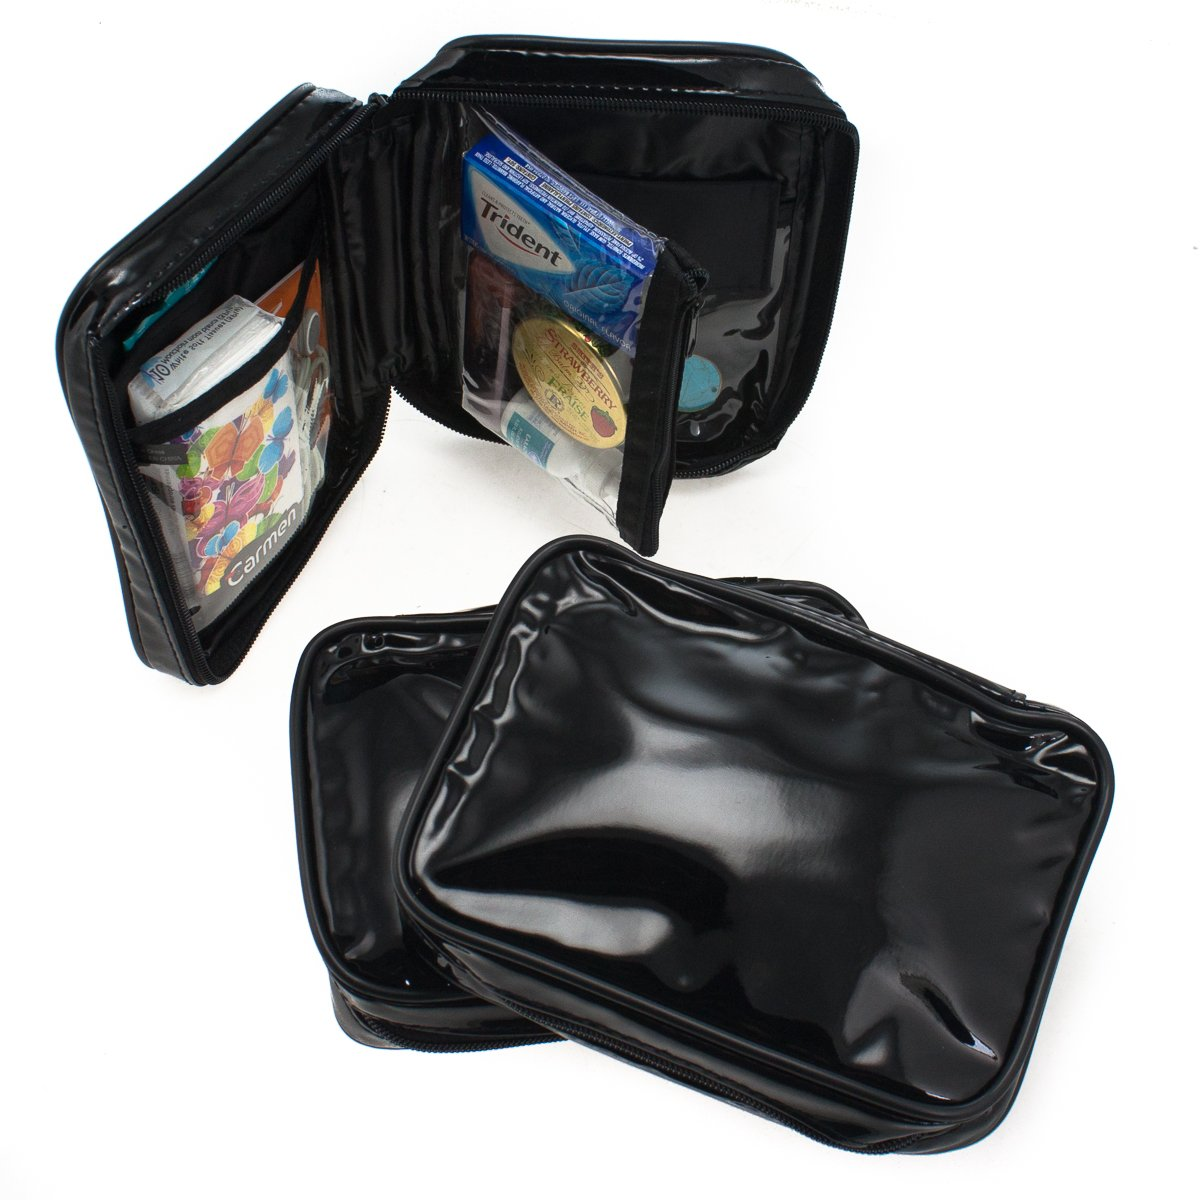 a4d94a7ed1c8 Buy 3 Makeup Bag Set Purse Insert Travel Organizer Clutch Black Faux Patent  Leather Online at Low Prices in India - Amazon.in